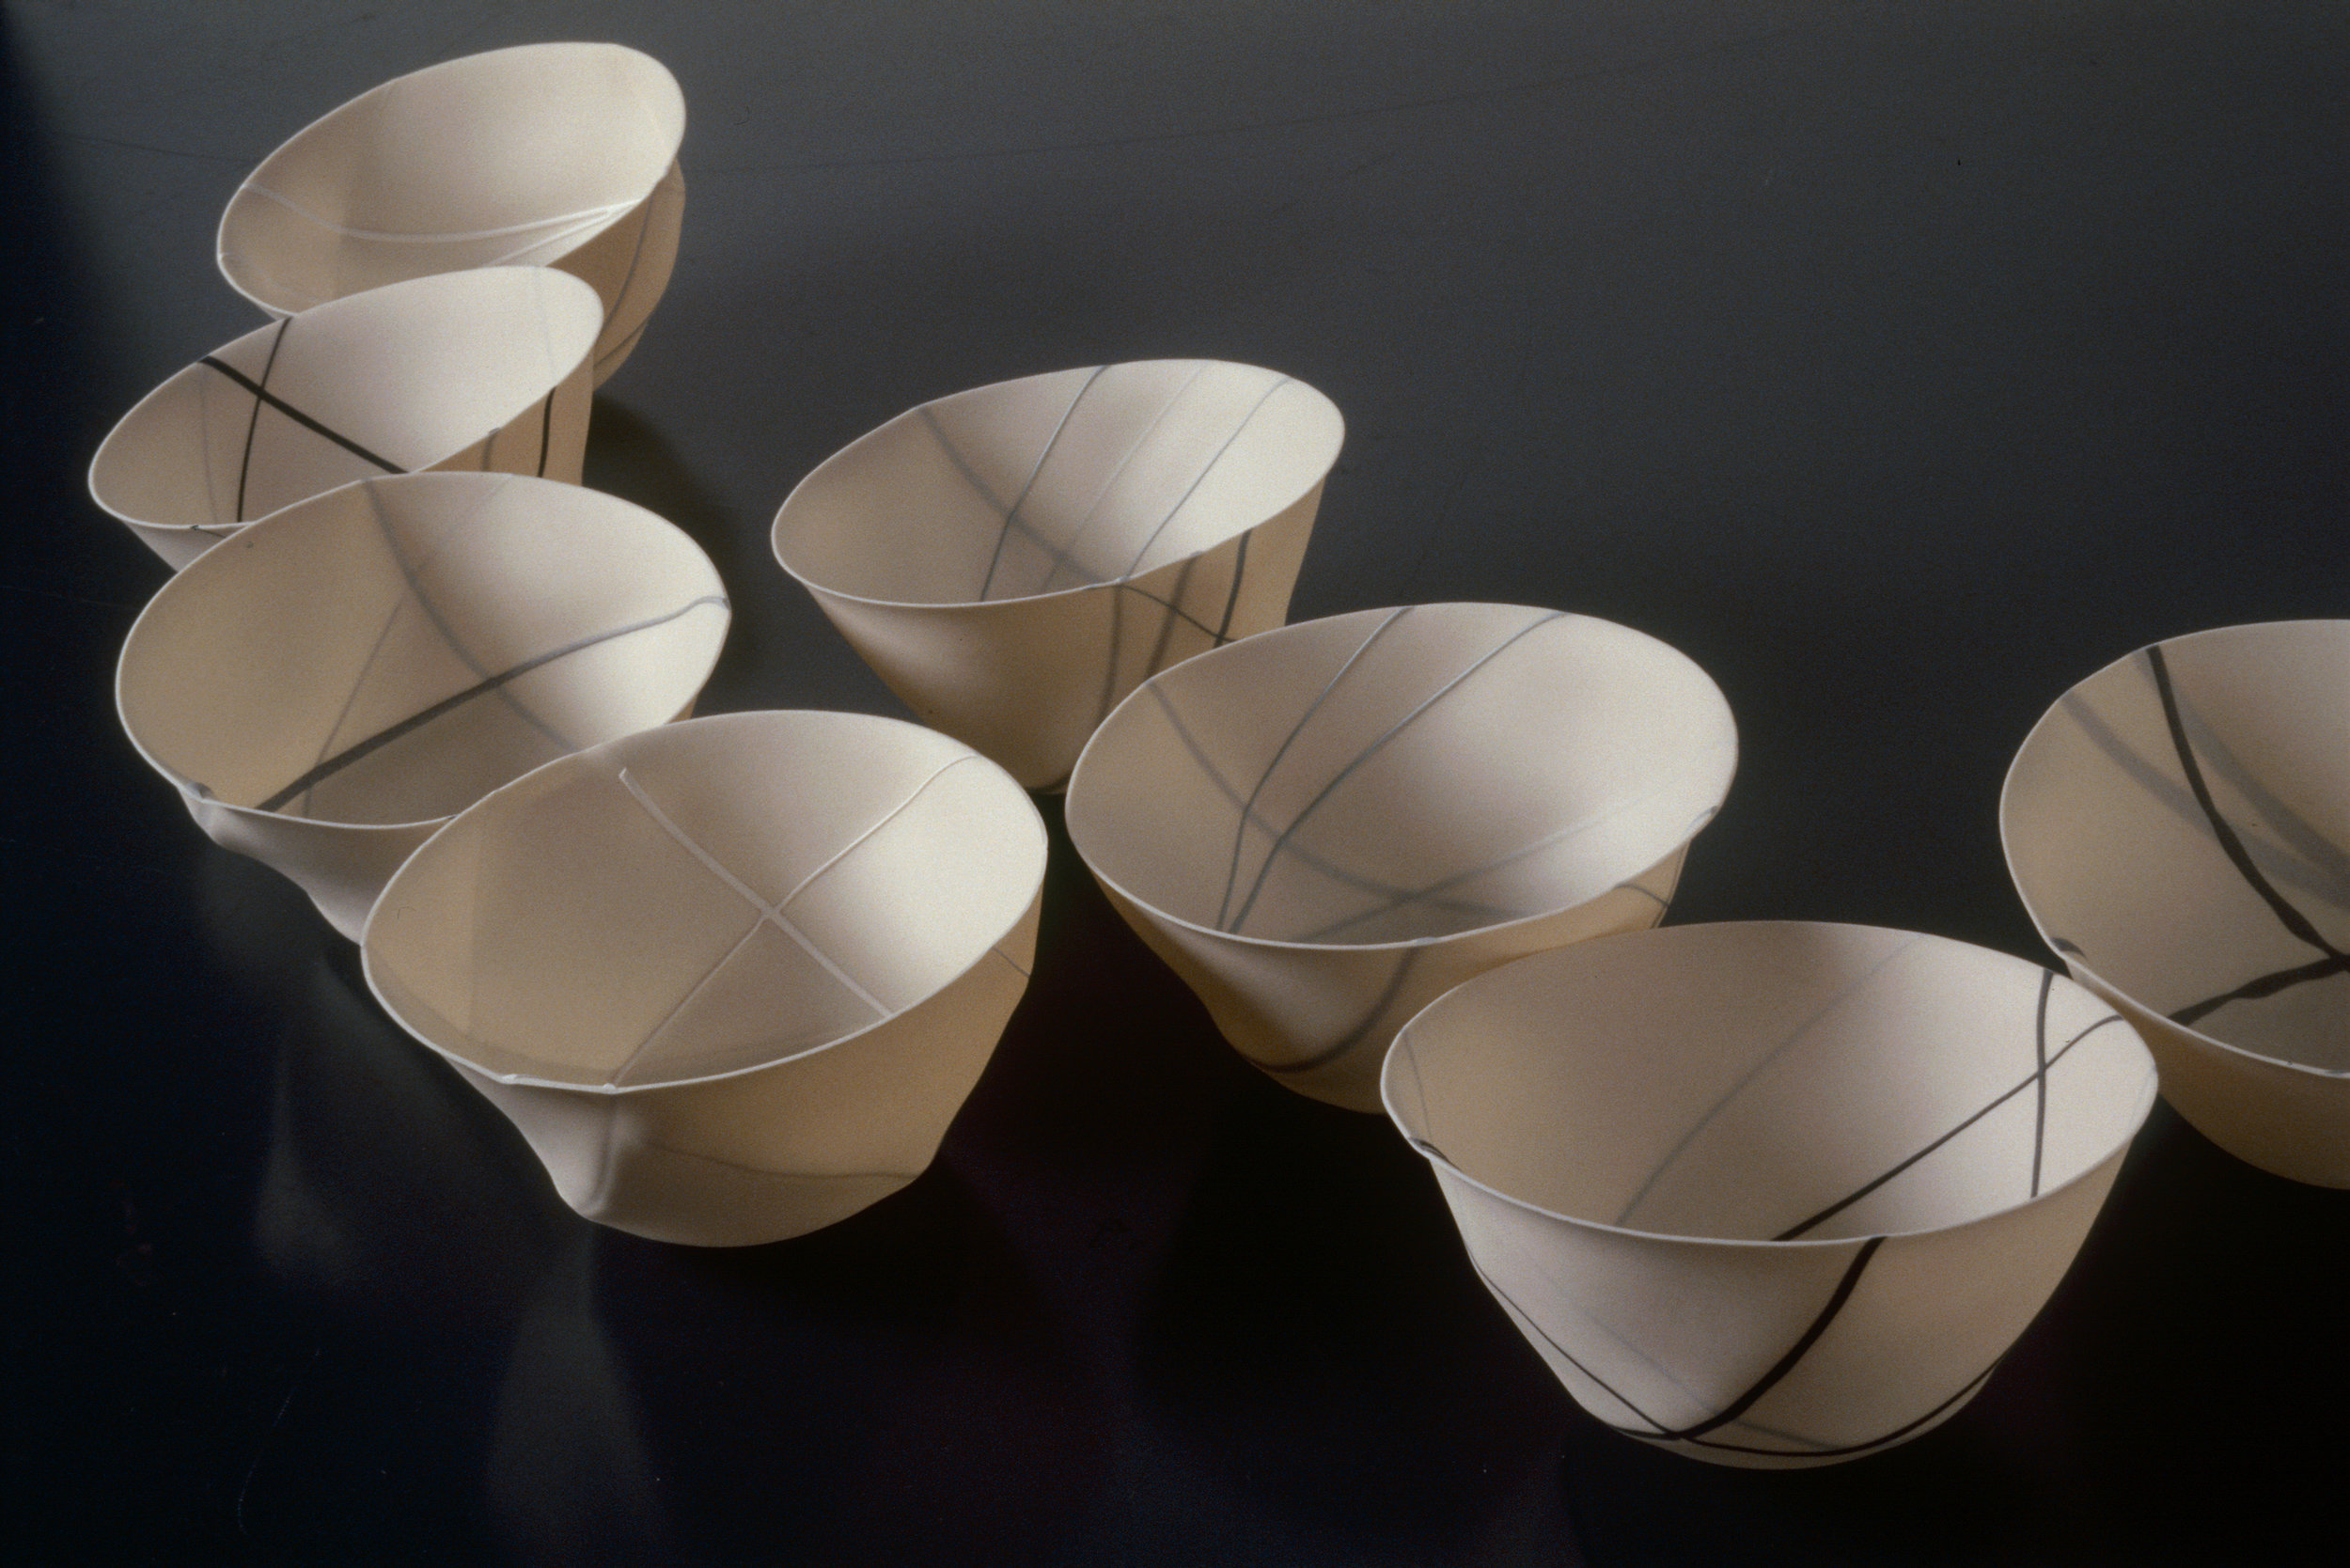 RANDOM LINE  SPUN PORCELAIN VESSELS  SMALL BONE CHINA IN - OUT  PHOTO: GRAHAM MURRELL